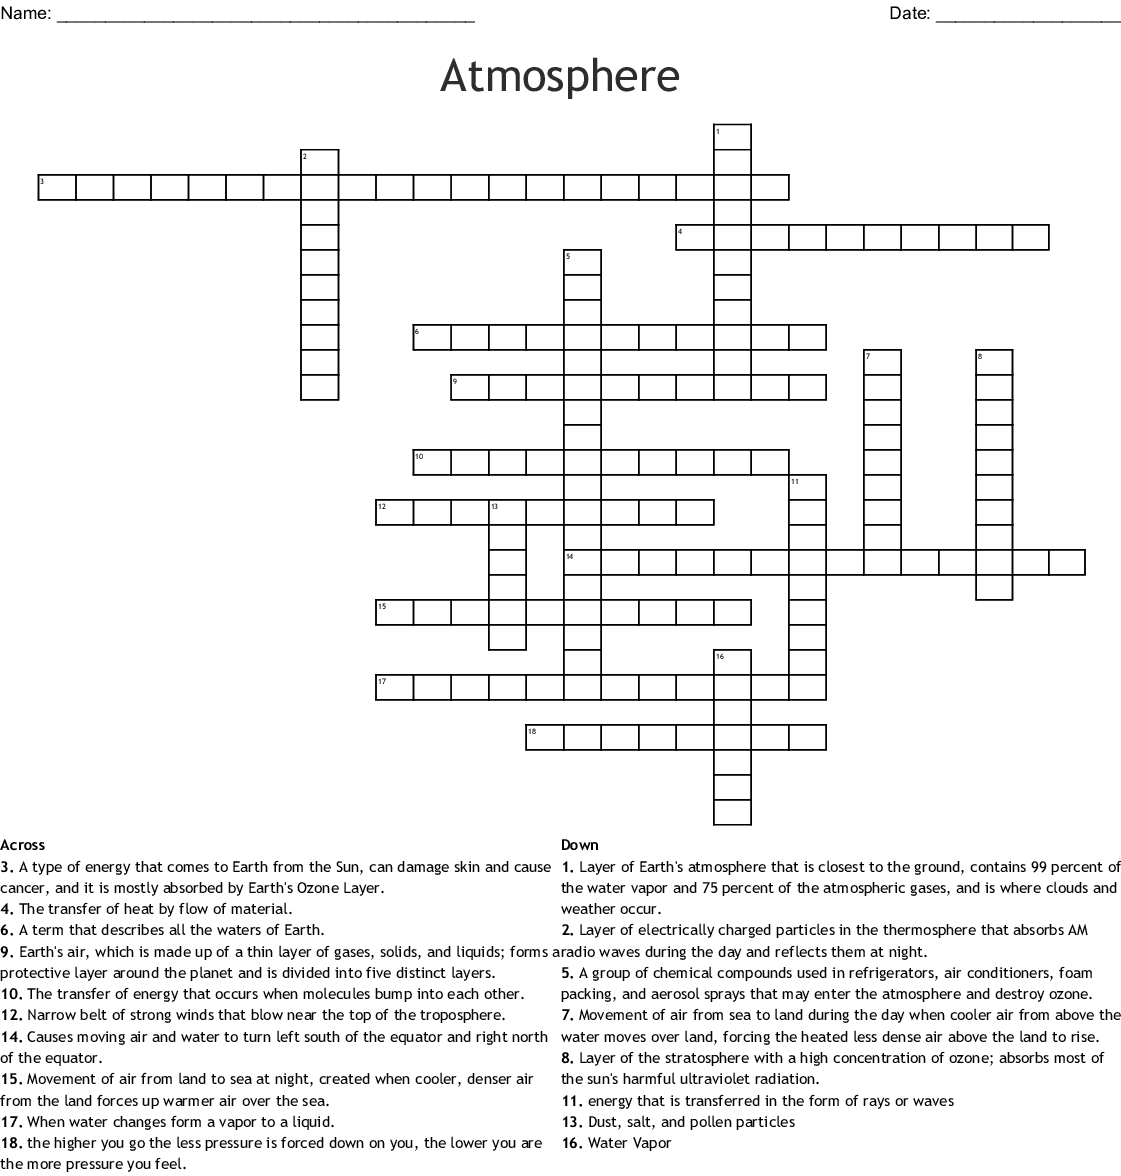 Atmosphere Crossword